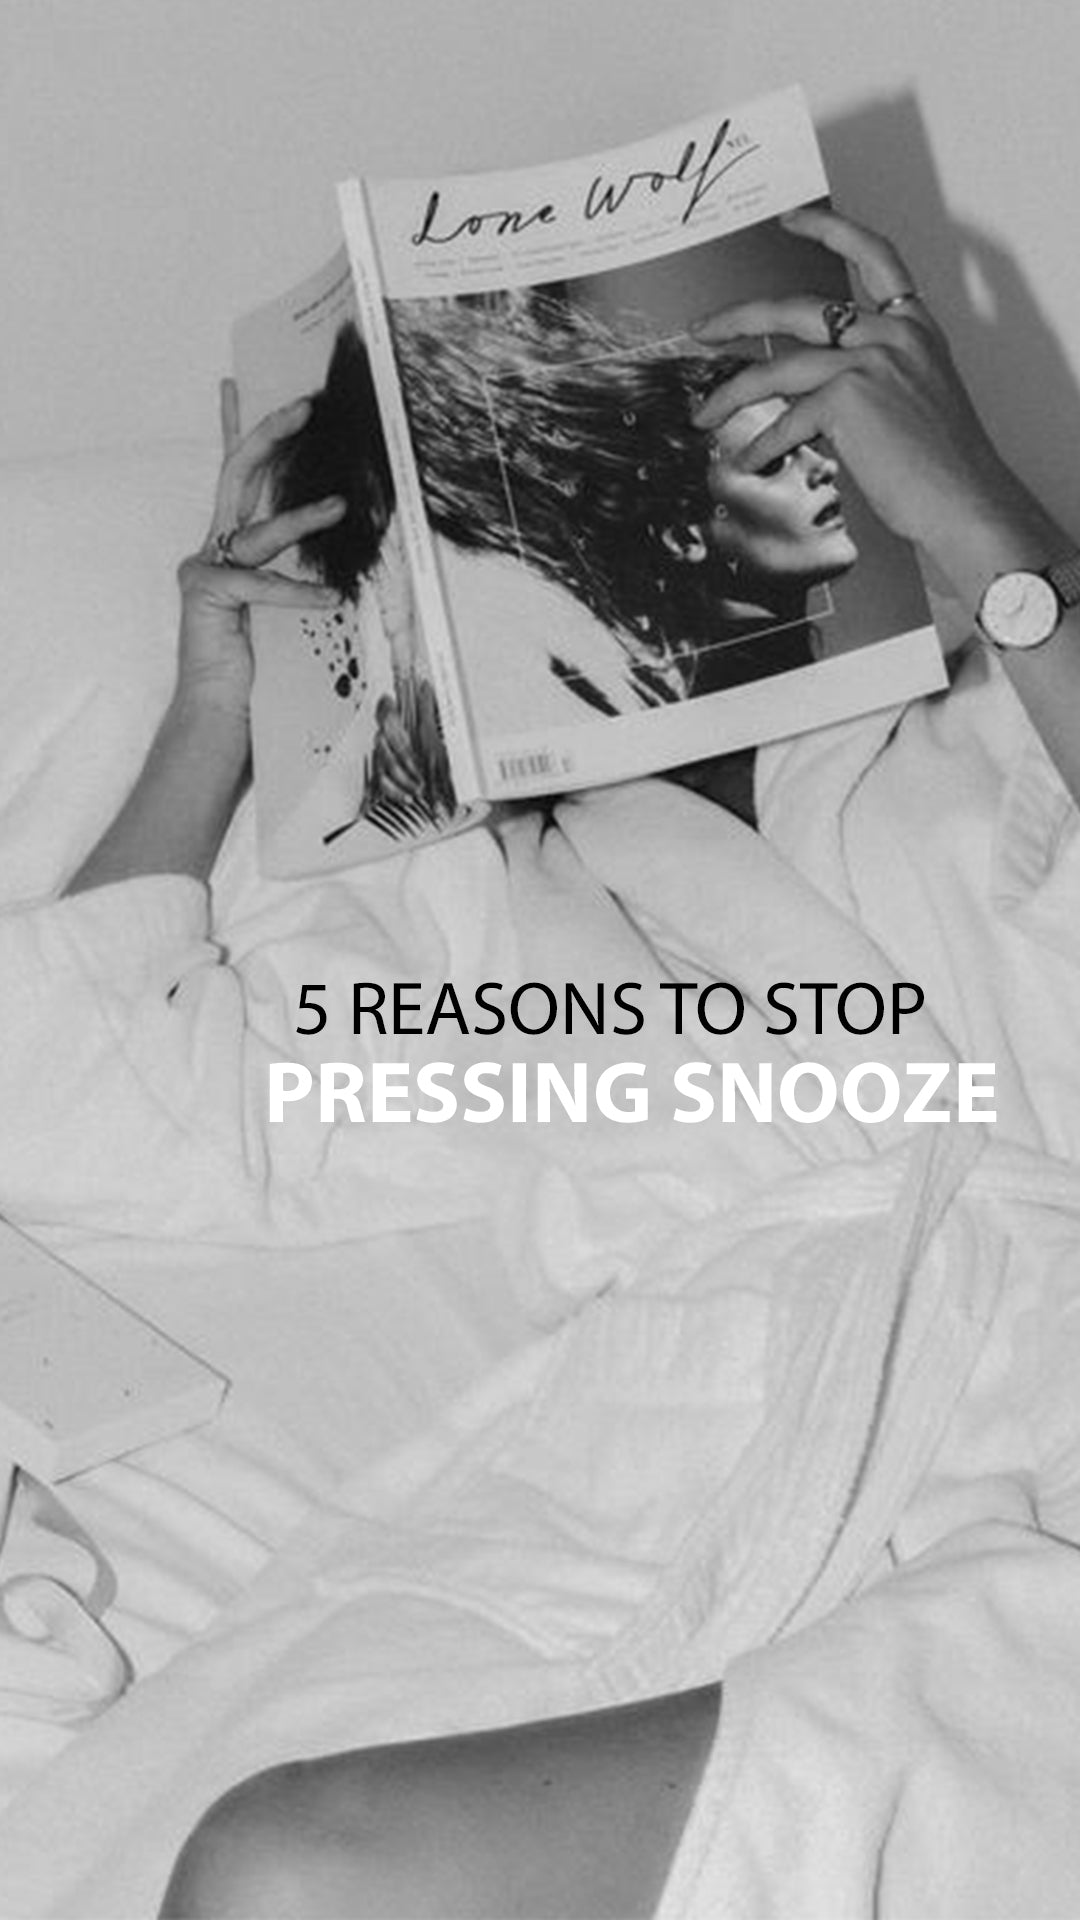 5 Reasons To Stop Pressing Snooze